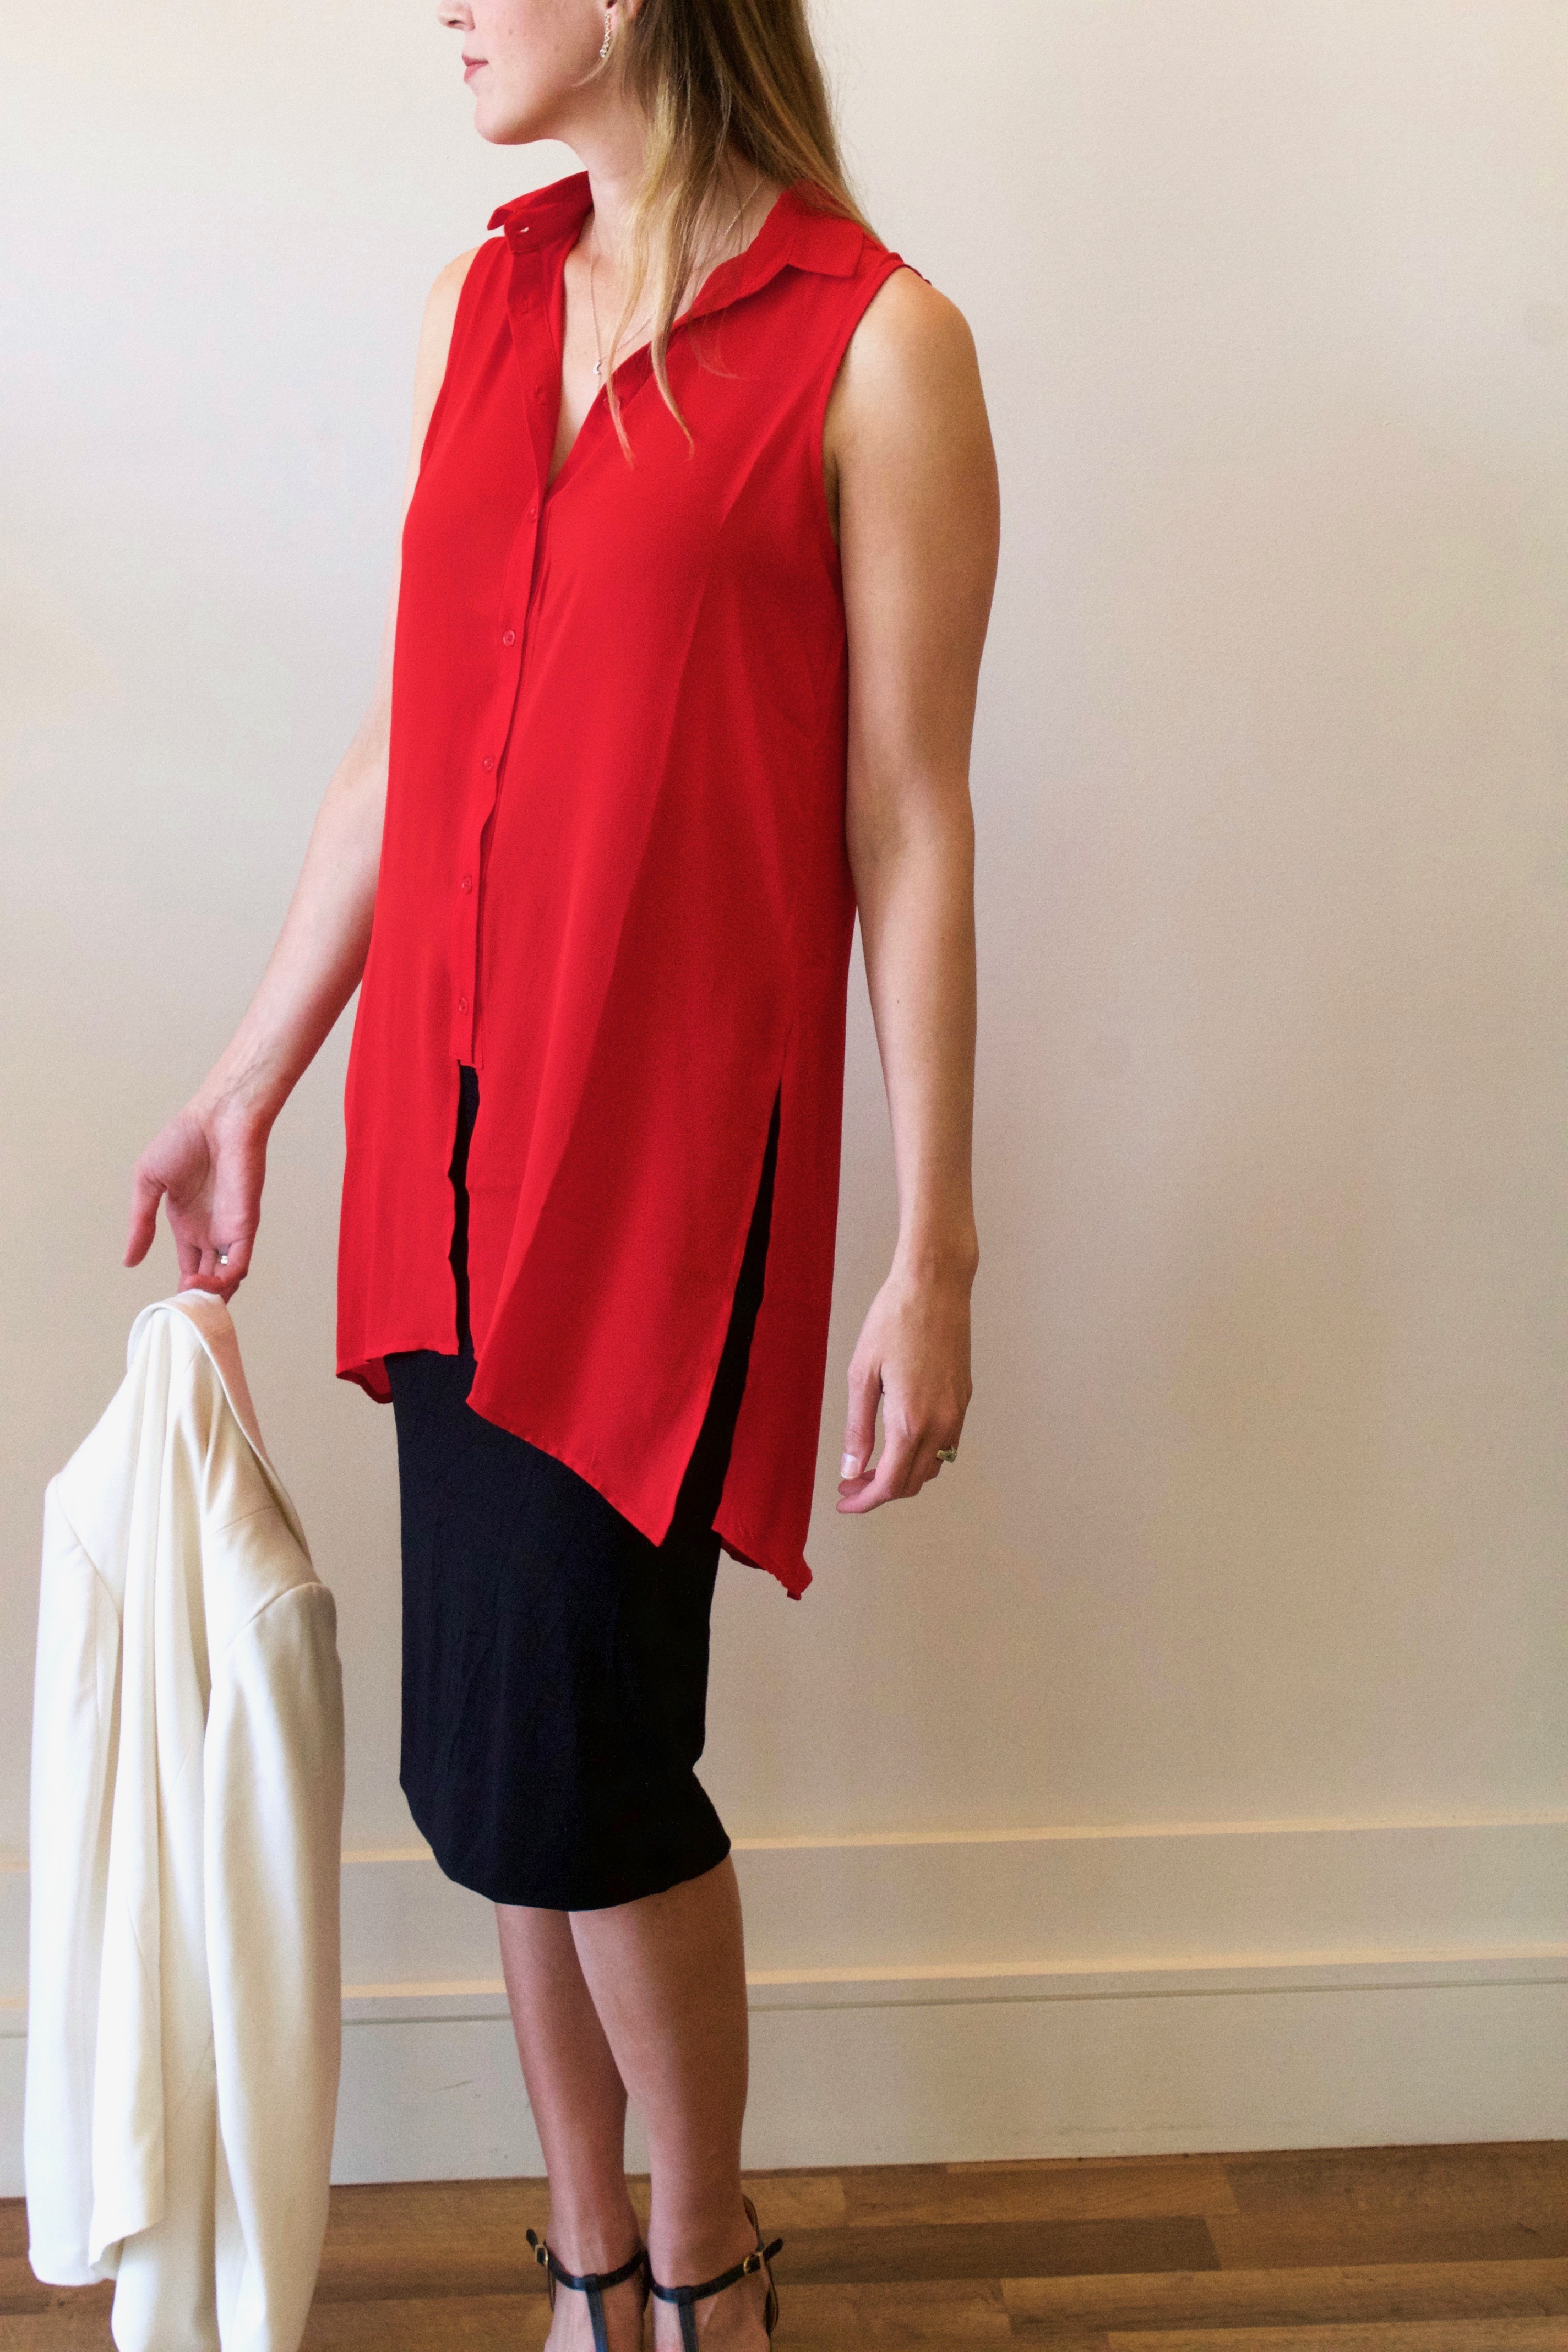 Benn Tunic from Arco Avenue // thehiveblog.com